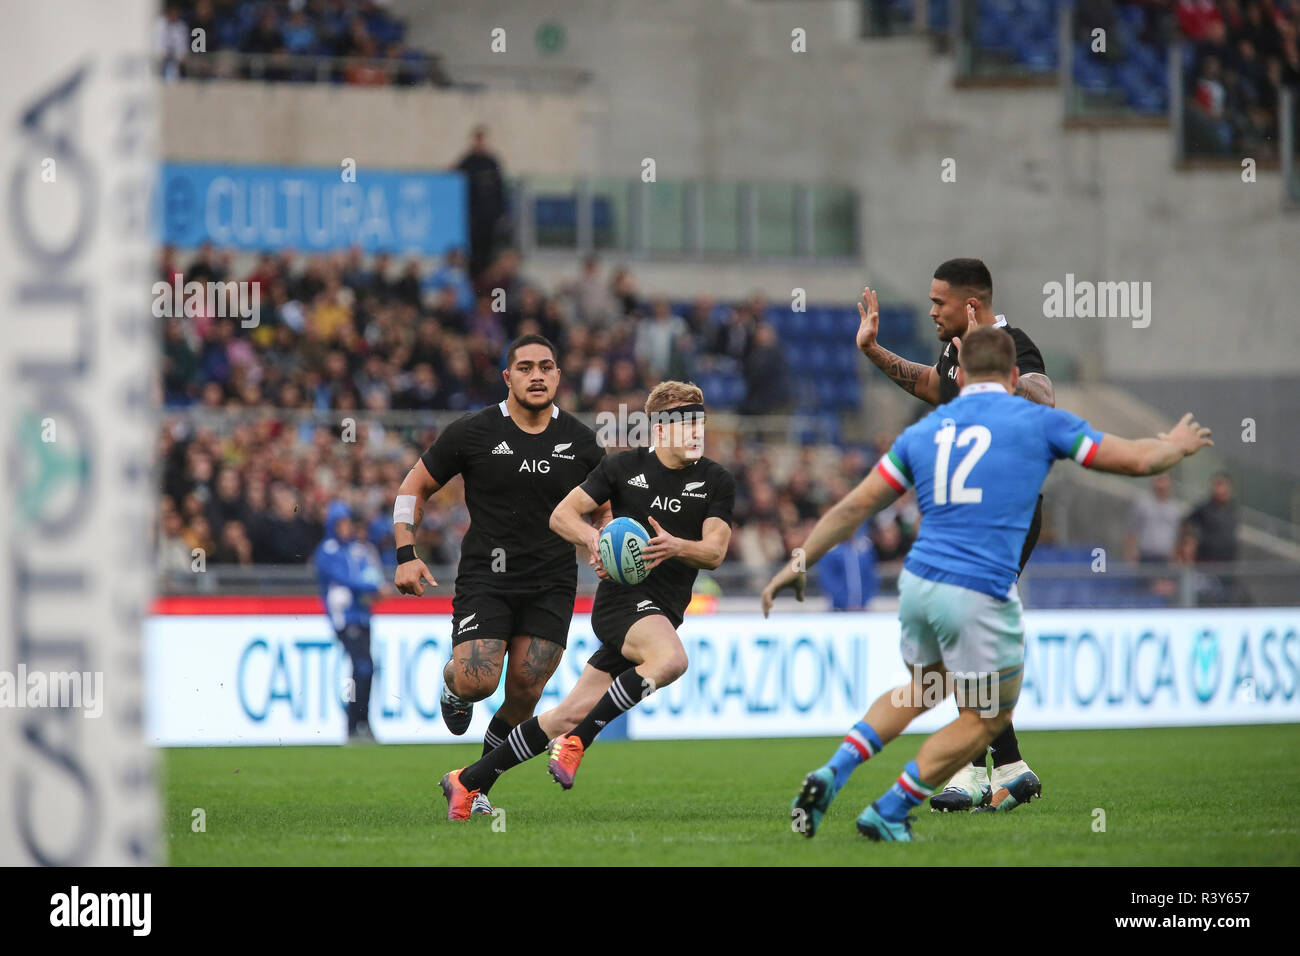 Roma, Italy. 24th November, 2018. All Blacks' full back Damian McKenzie carries the ball in the match against Italy in November Cattolica Test Match 2018 Credit: Massimiliano Carnabuci/Alamy Live News - Stock Image